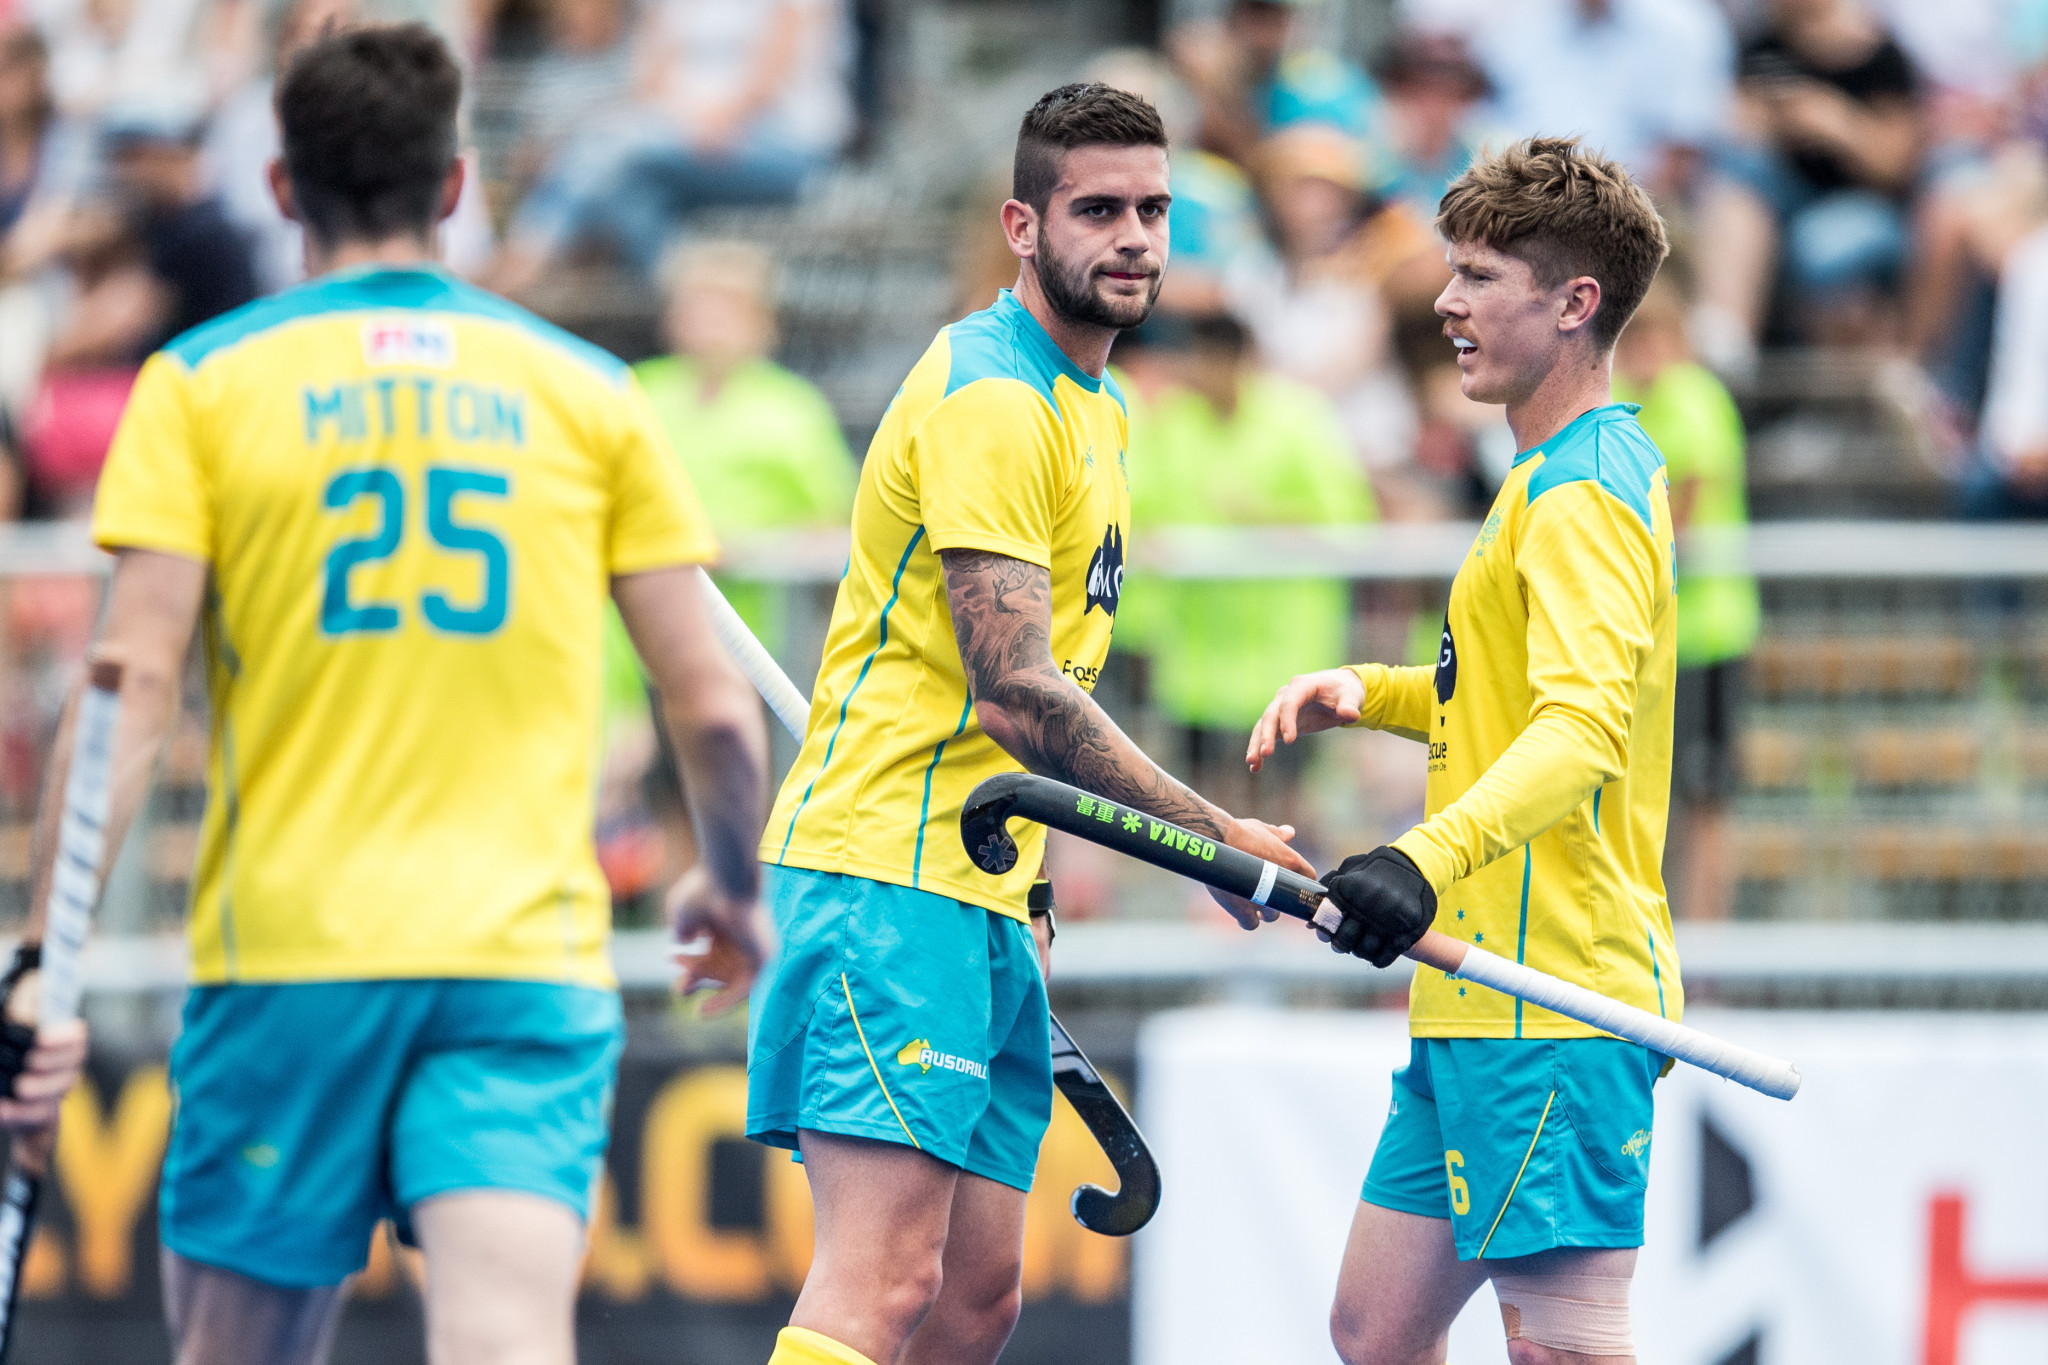 Australia and Germany reach Women's FIH Pro League Grand Final while Aussies and Belgium qualify for men's last four